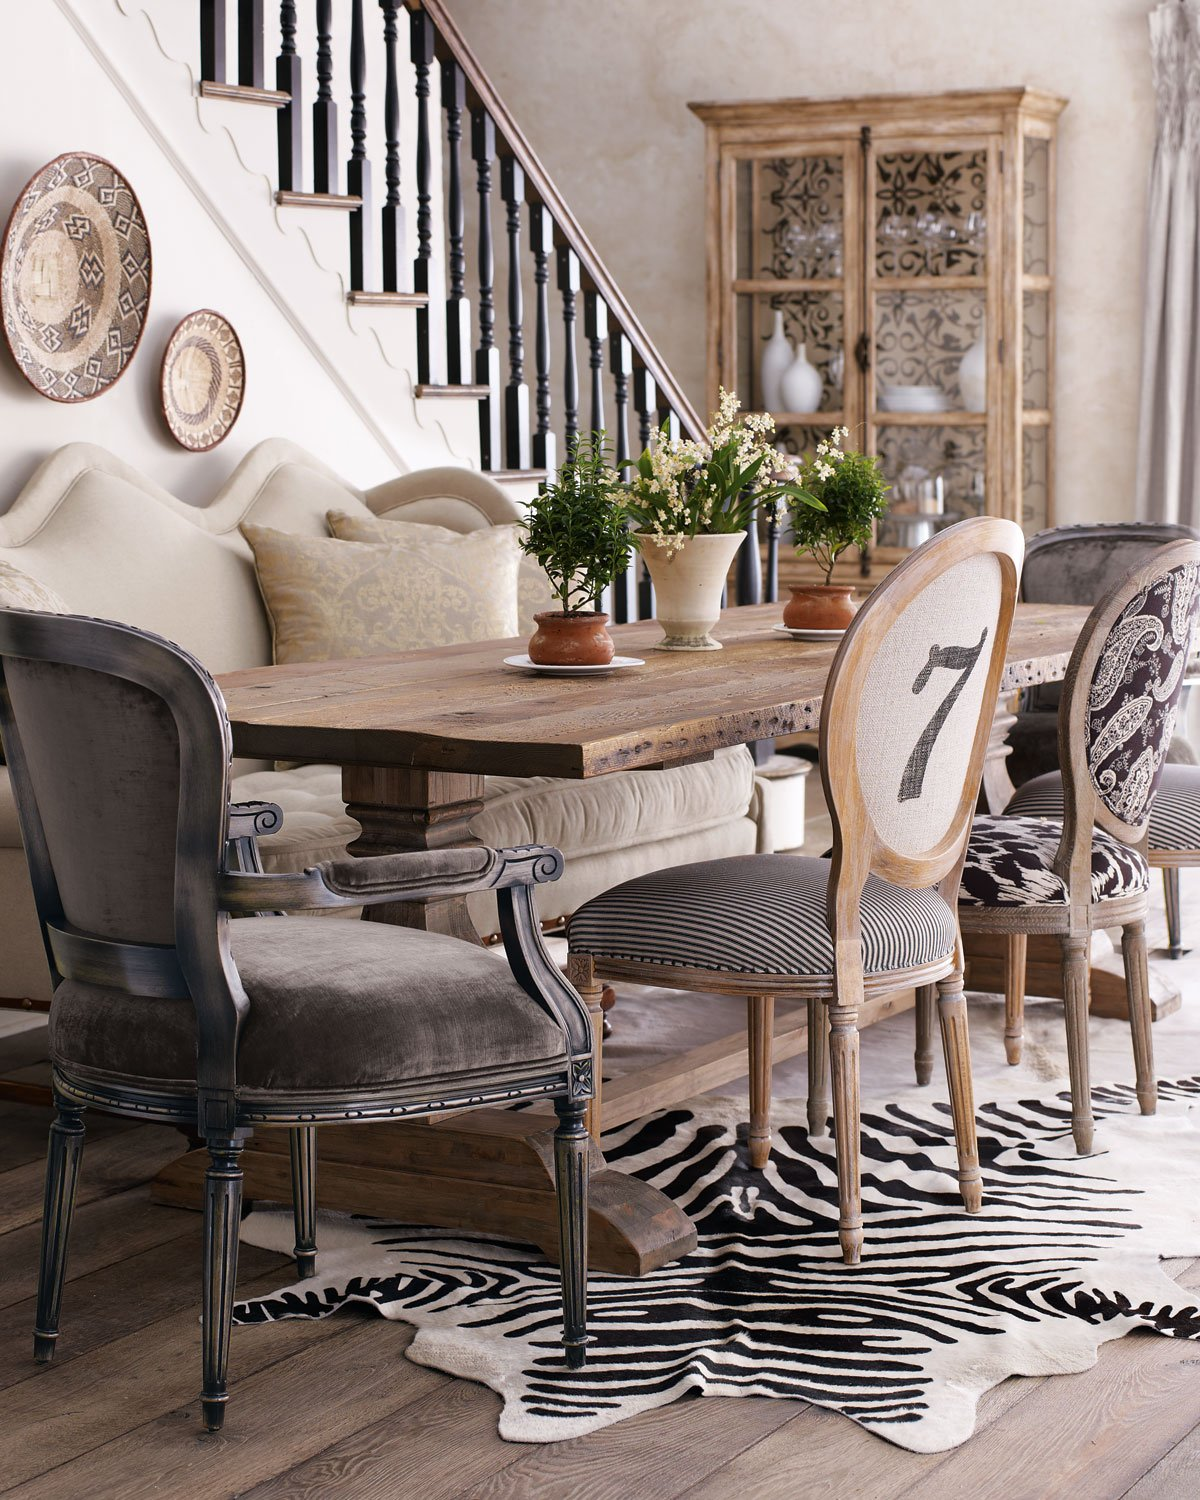 Sofa In Dining Room: How To Mix & Match Dining Chairs